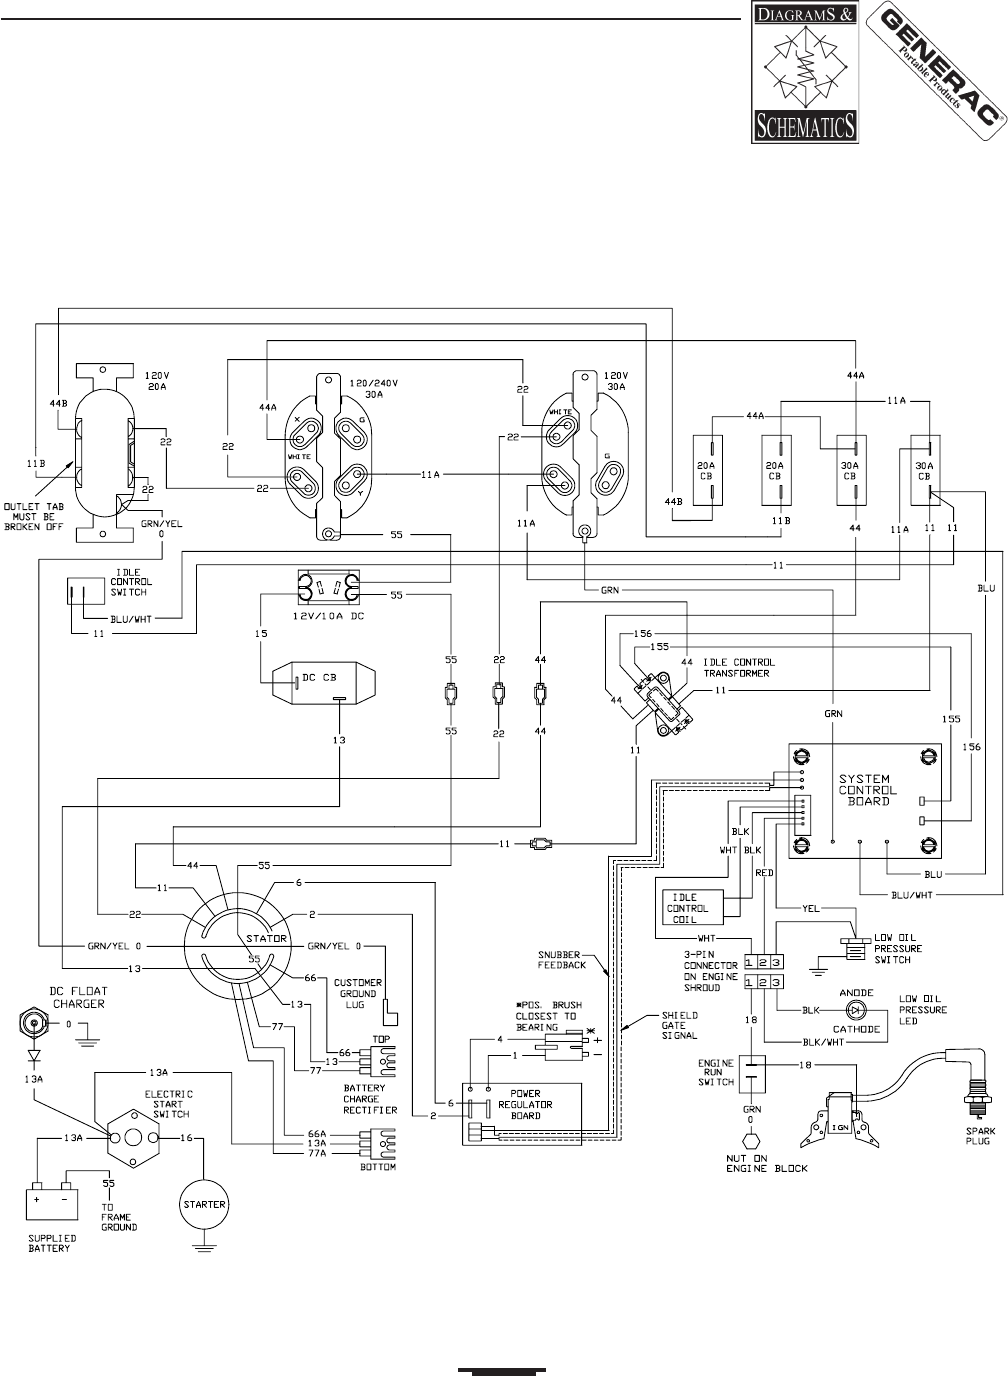 10af0856 e114 493f 97cc 04413042976c bg11 page 17 of generac portable generator 7000exl user guide generac 7000exl wiring diagram at suagrazia.org